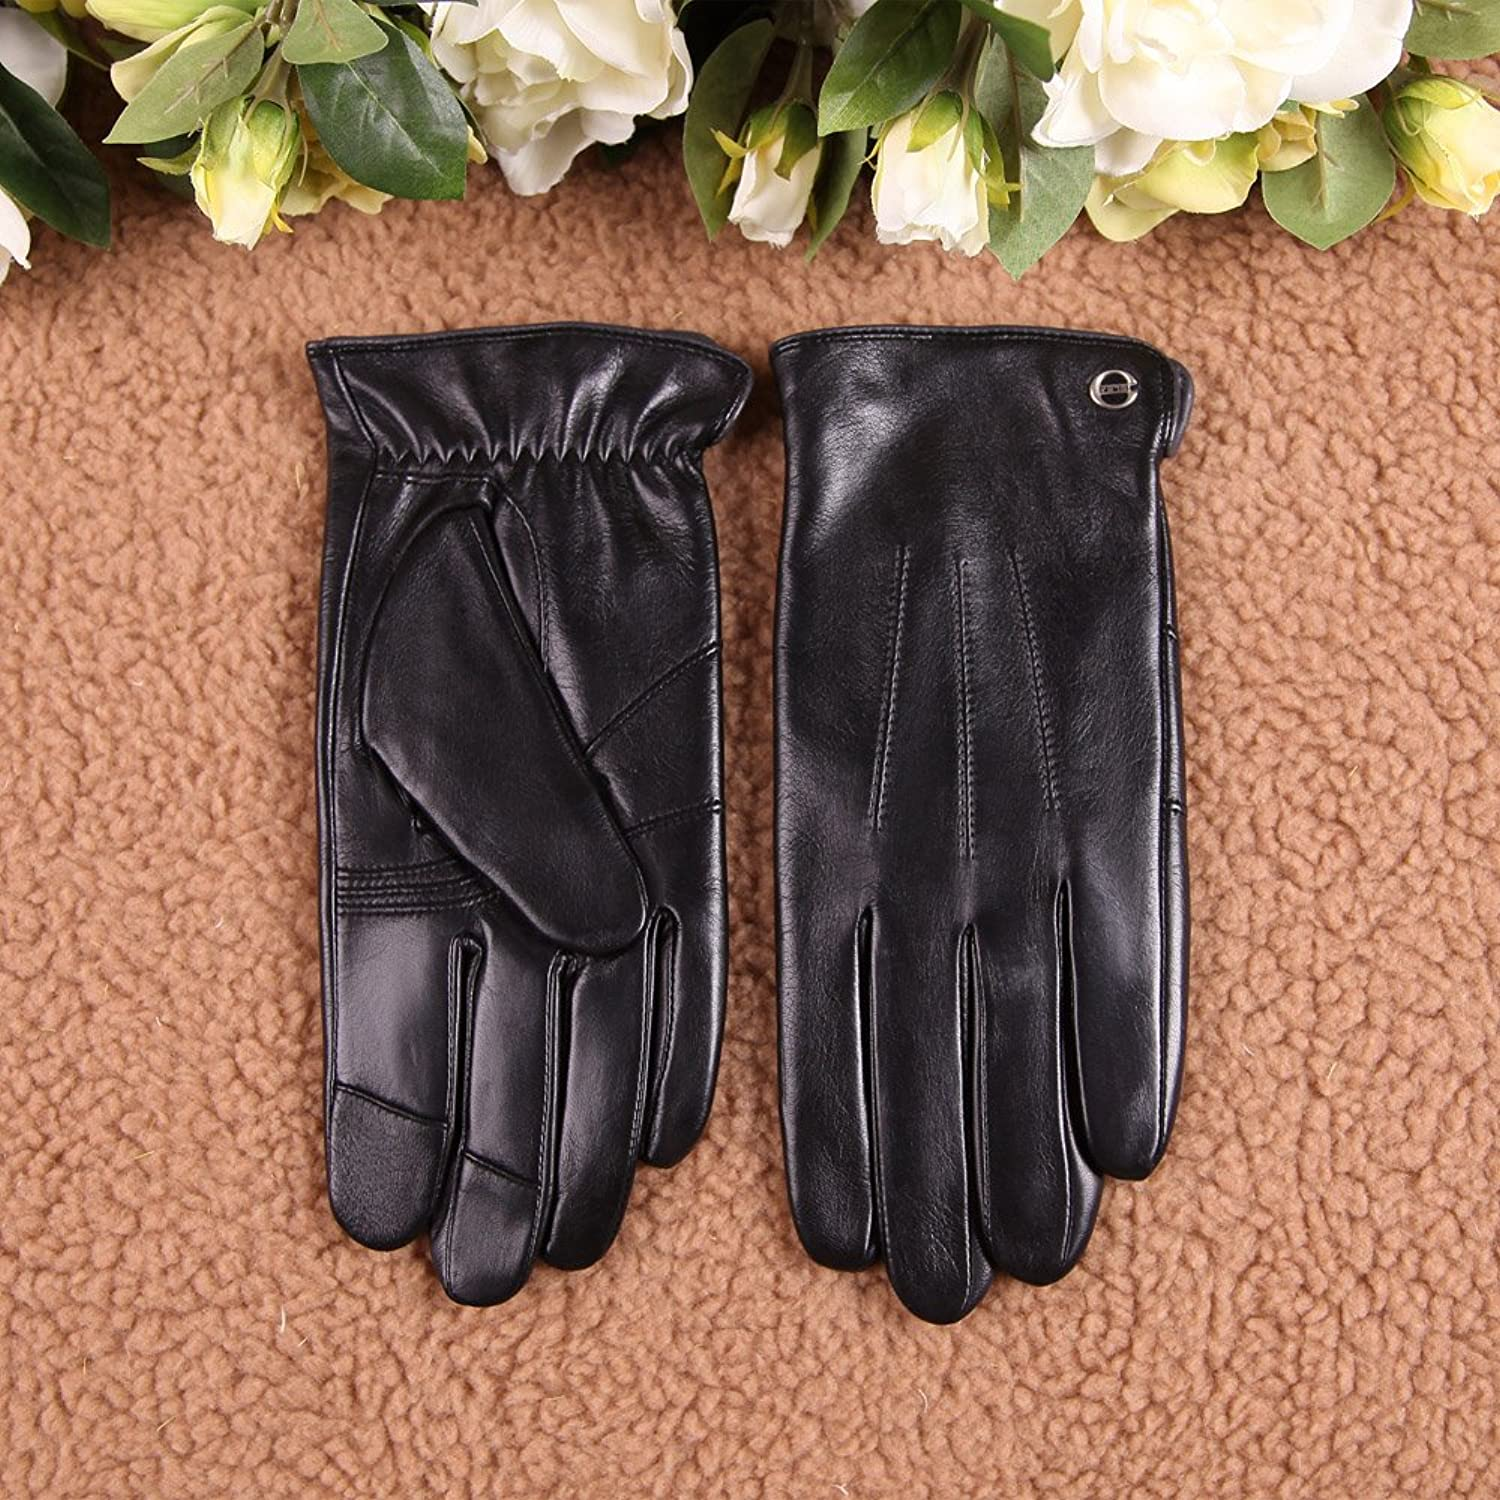 Leather driving gloves vancouver - Luxury Men S Touchscreen Texting Winter Italian Nappa Leather Gloves Plush Cashmere Lining Amazon Ca Clothing Accessories